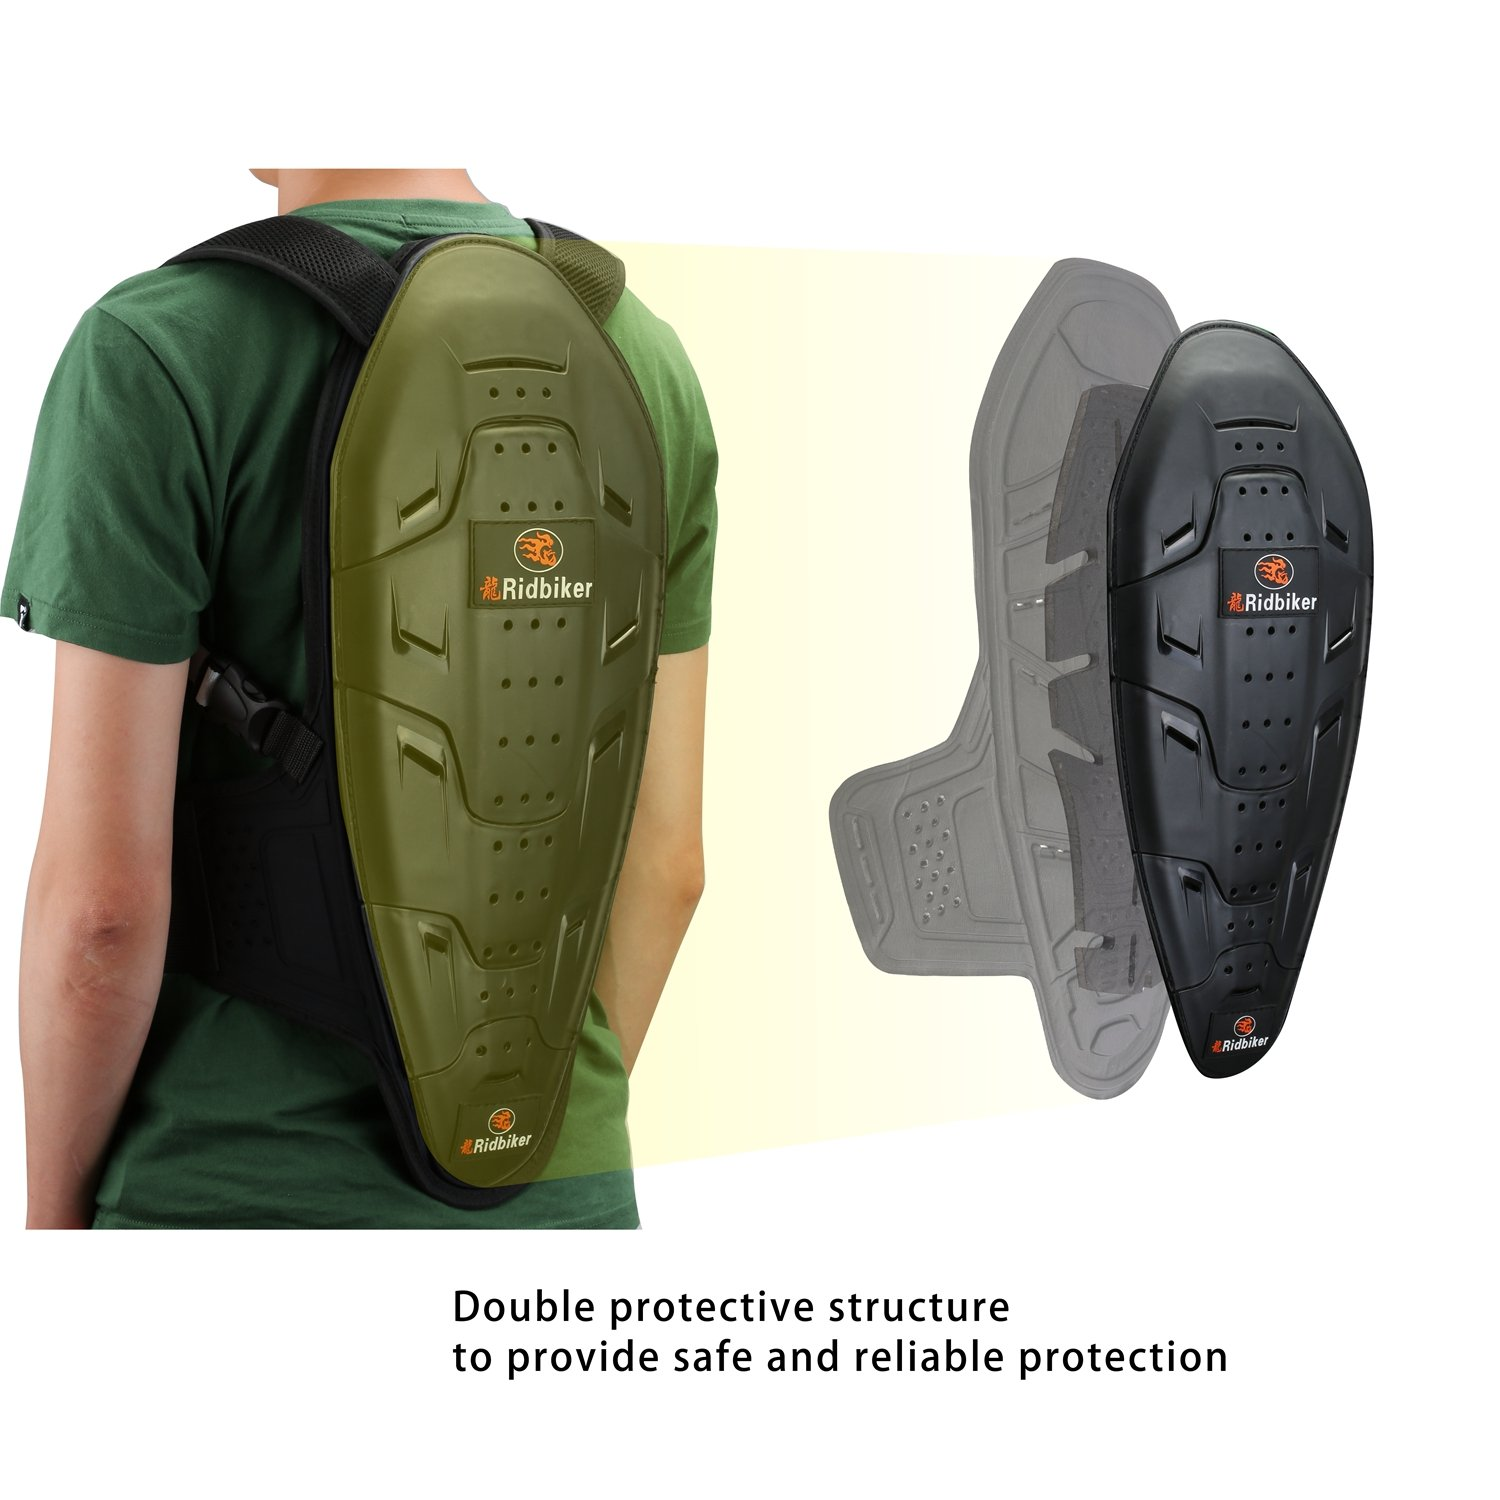 RIDBIKER Motorcycle Bicycle Back & Spine Protector Motocross Racing Spine Armor Skiing Riding Skating Anti-Fall Vest Protective Gear by RIDBIKER (Image #5)